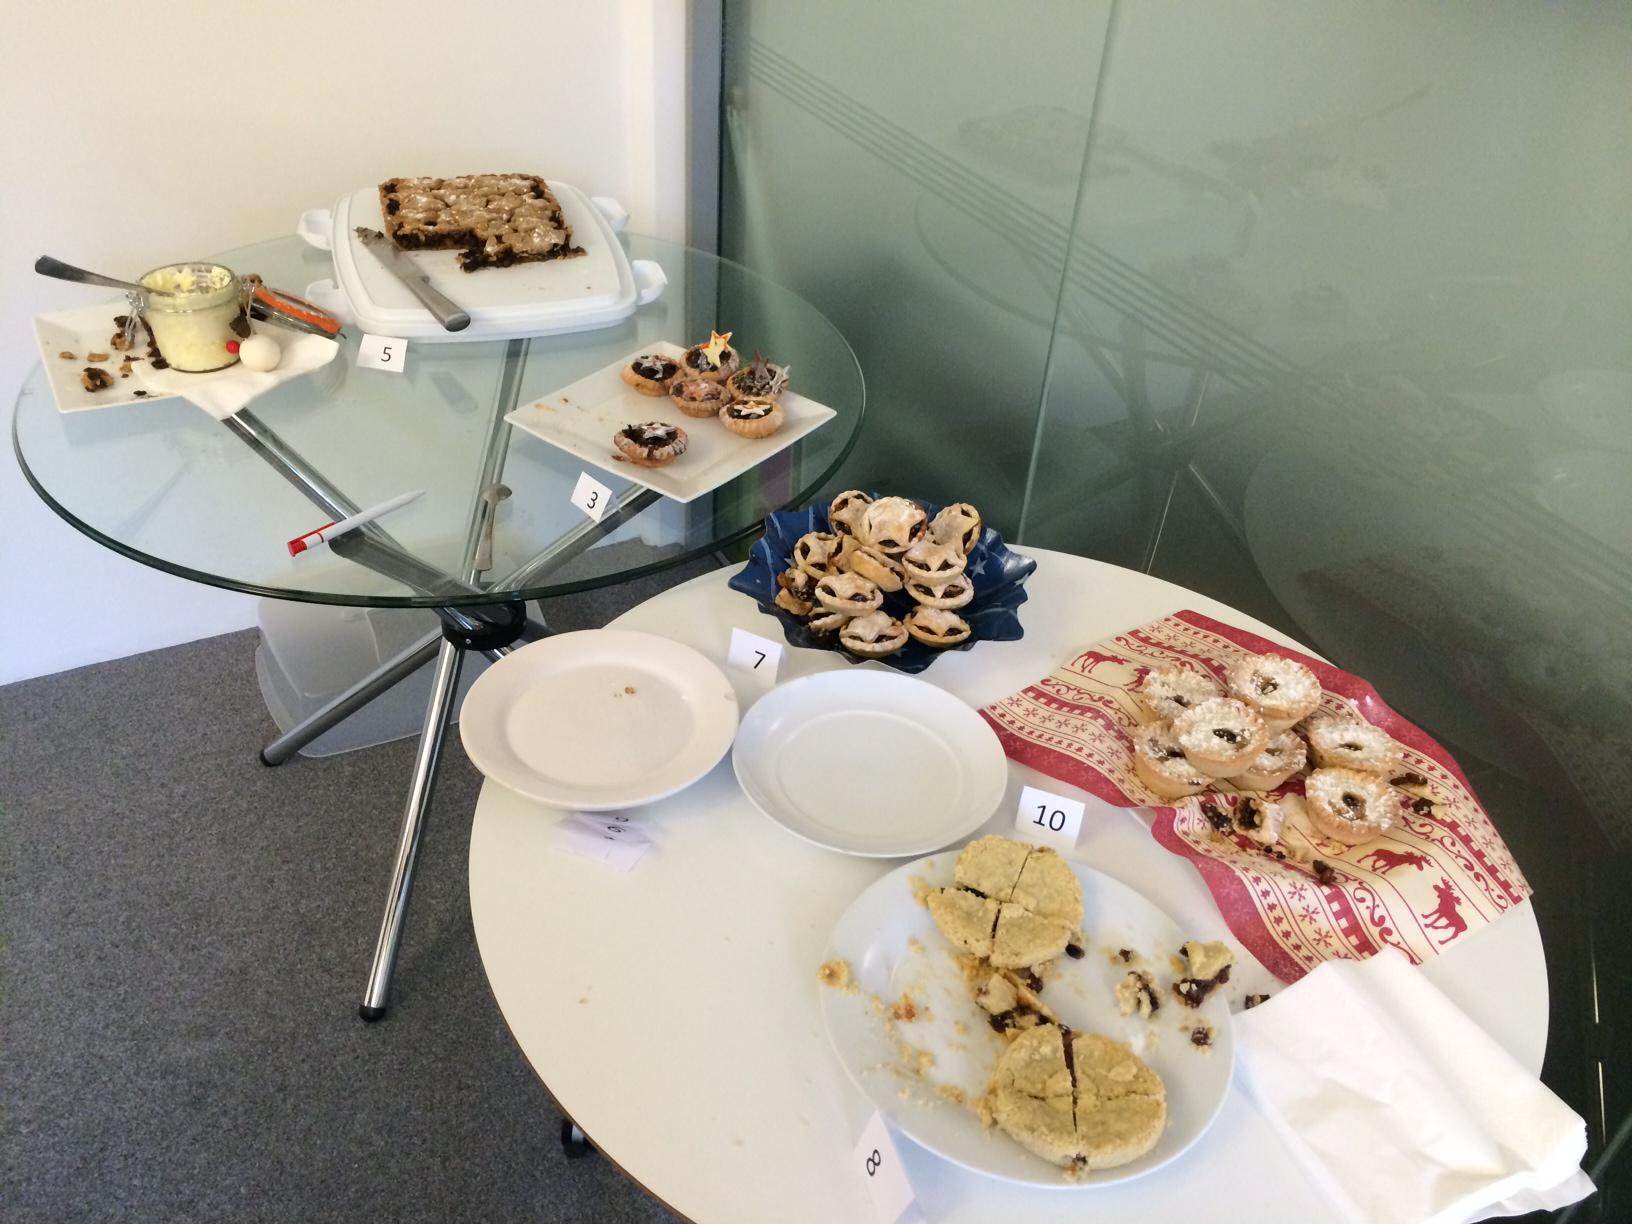 The Think Tank hosts mince pie bake off - find out more here: #bakeoff #christmas http://t.co/ZhGhvjL8C7 http://t.co/lAcfdnU2kV